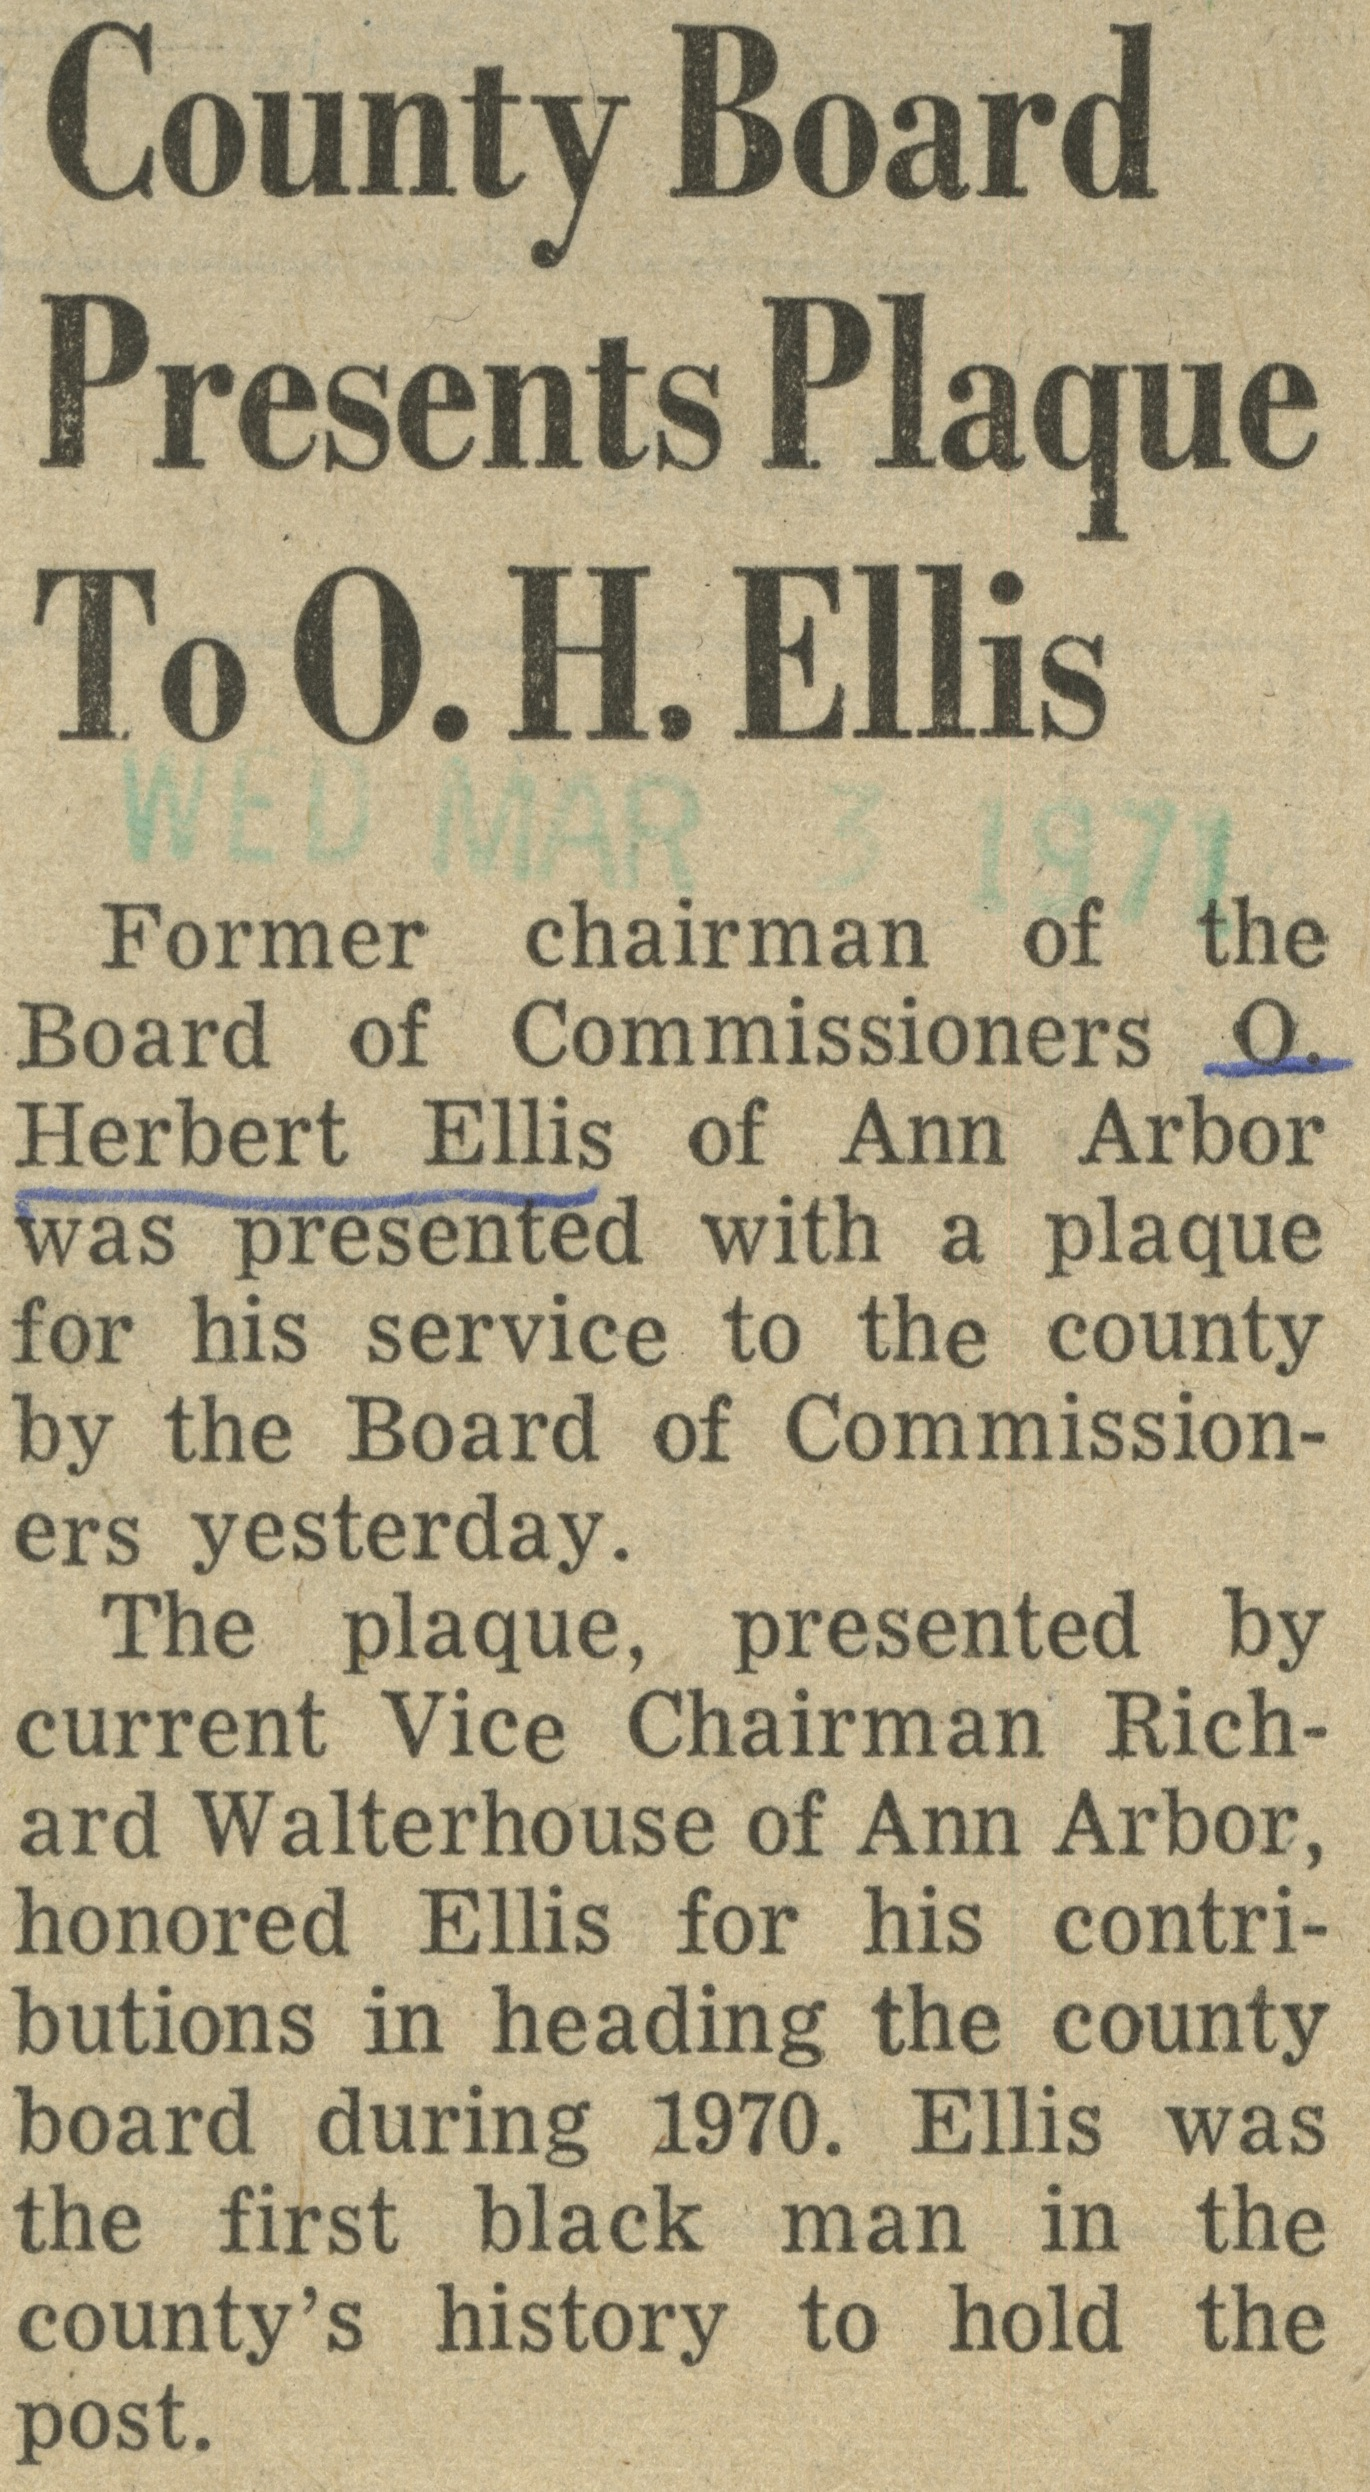 County Board Presents Plaque To O. H. Ellis image